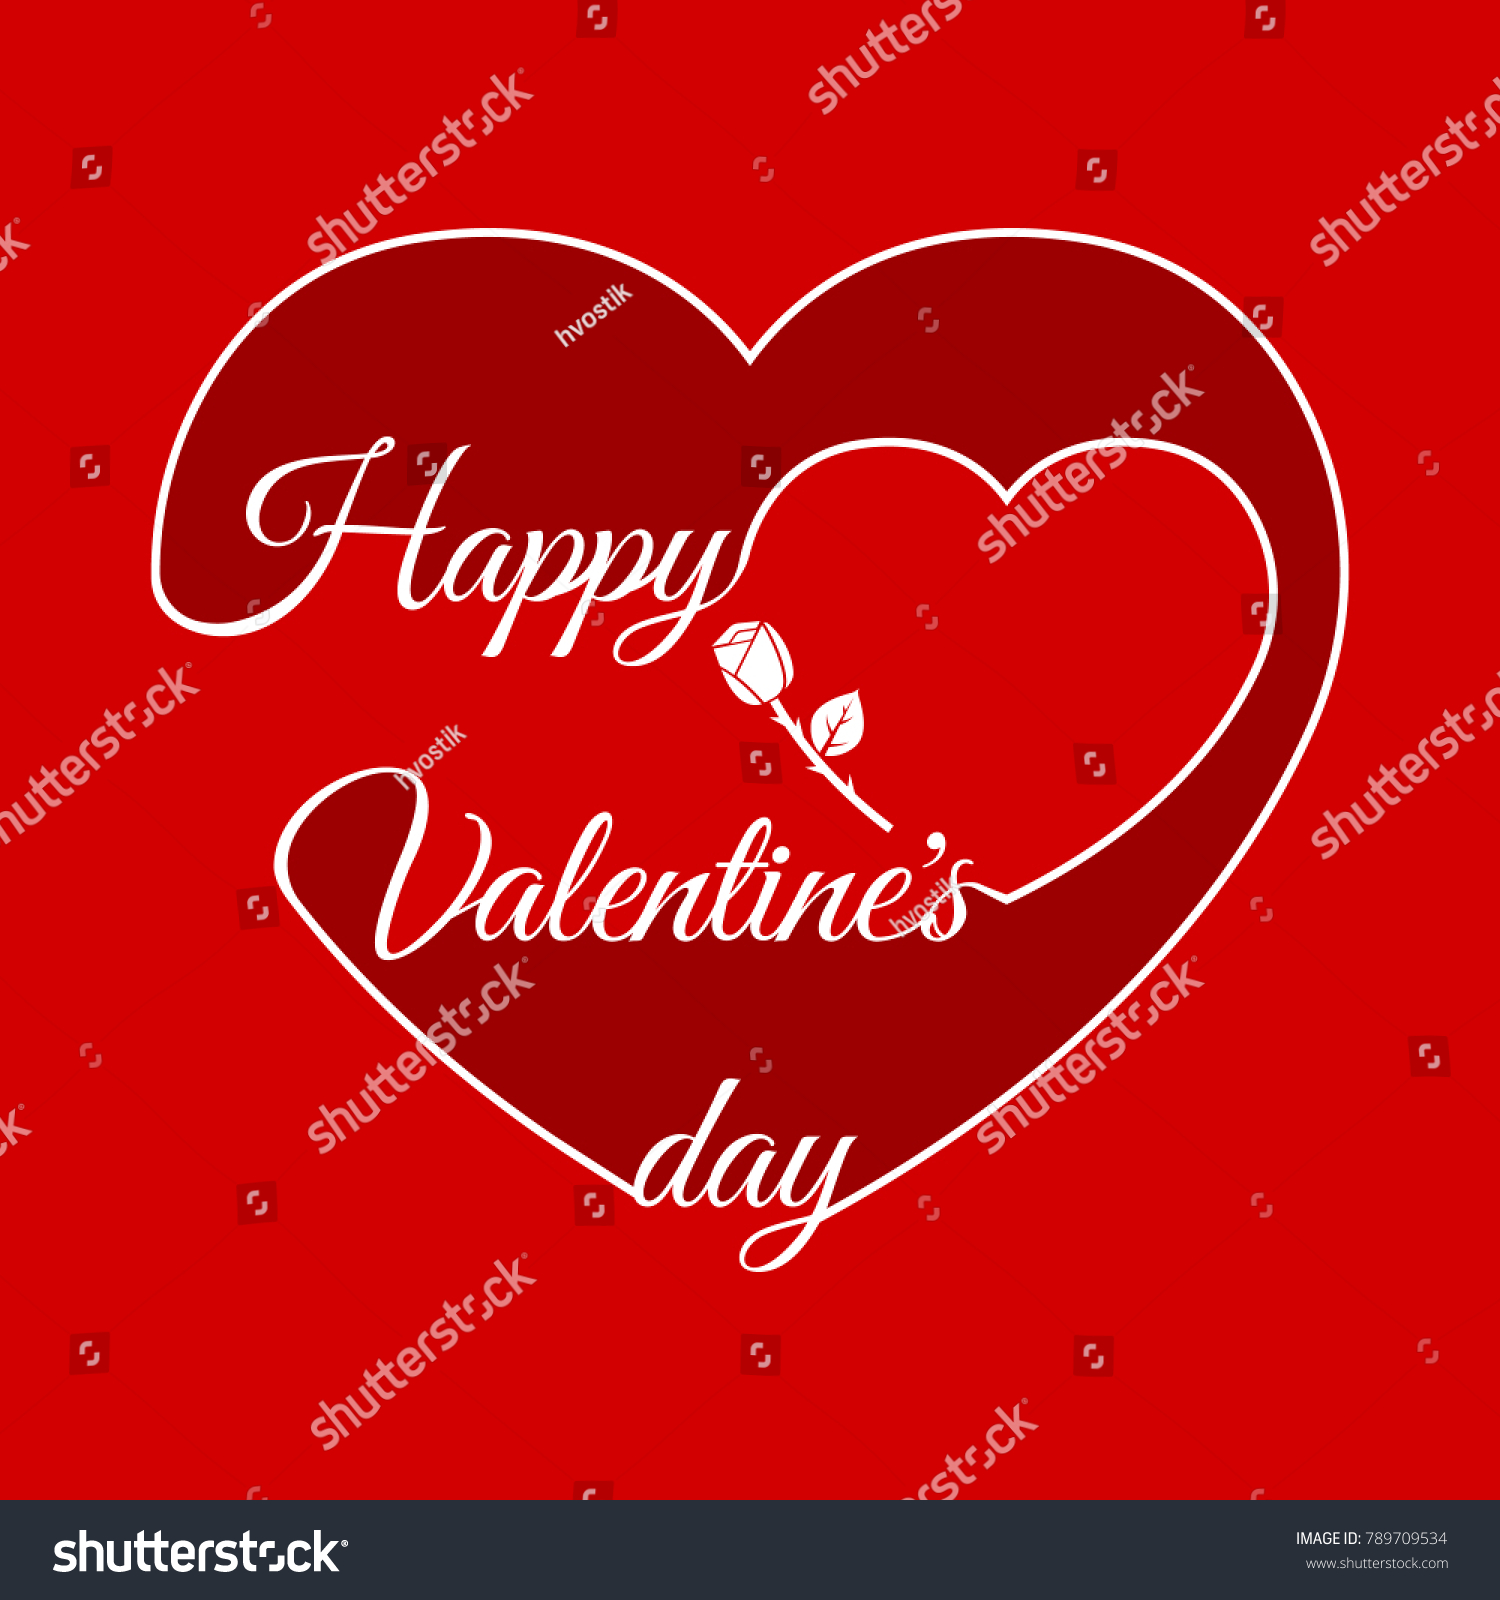 Valentines day cards love card valentines stock illustration valentines day cards love card valentines day background greeting card poster m4hsunfo